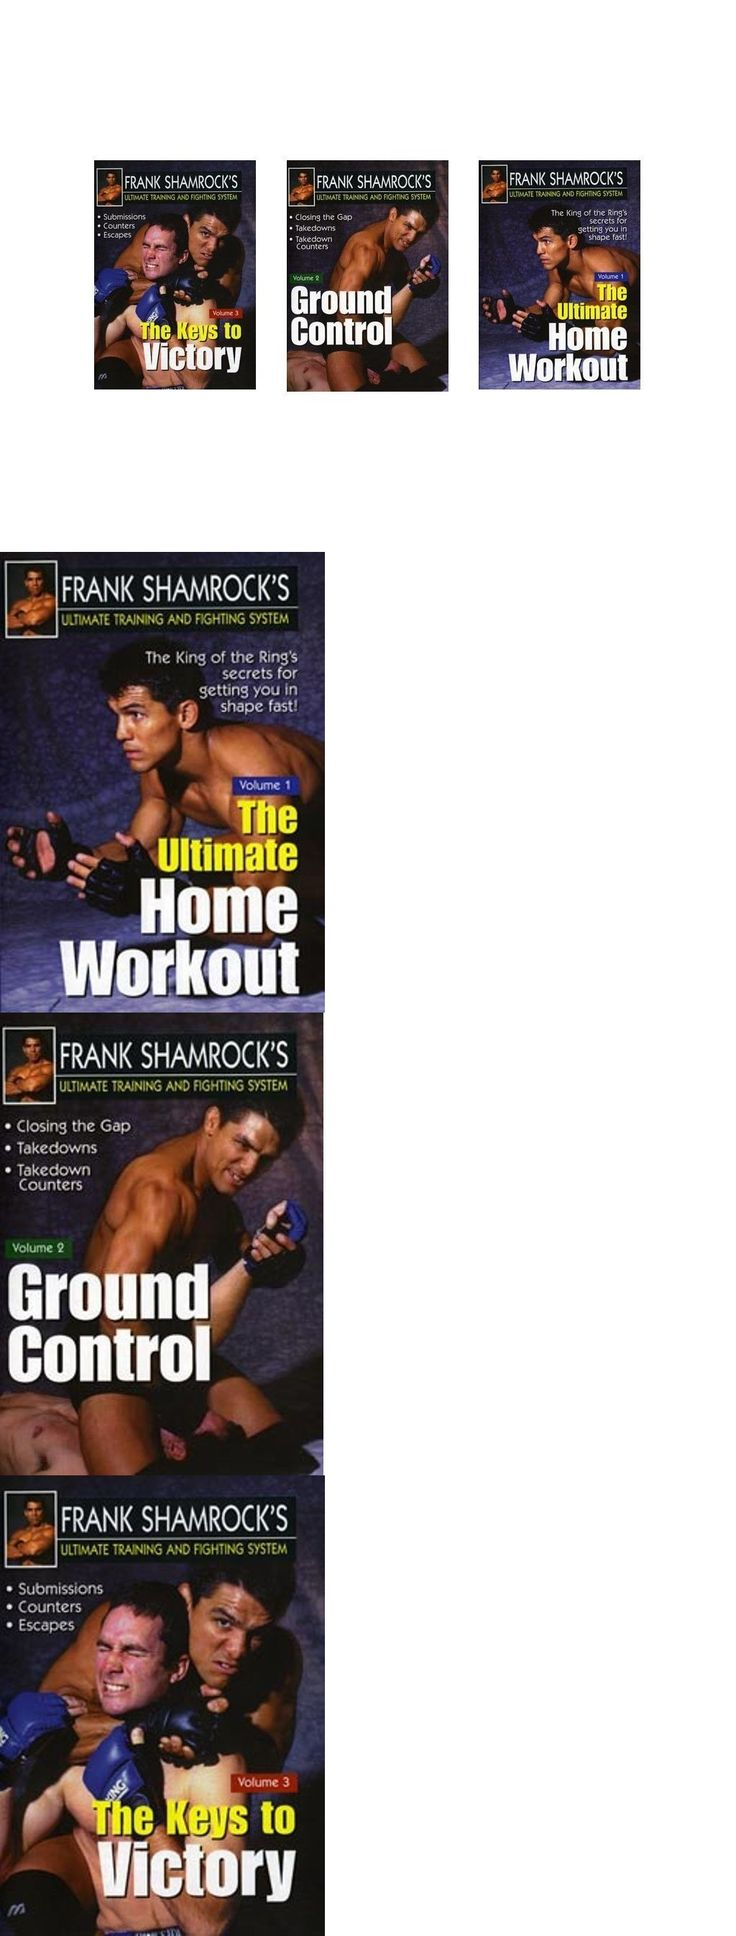 DVDs Videos and Books 73991: Frank Shamrock Training And Fighting 3 Dvd Set Mma Grappling Fighting Advanced BUY IT NOW ONLY: $69.95